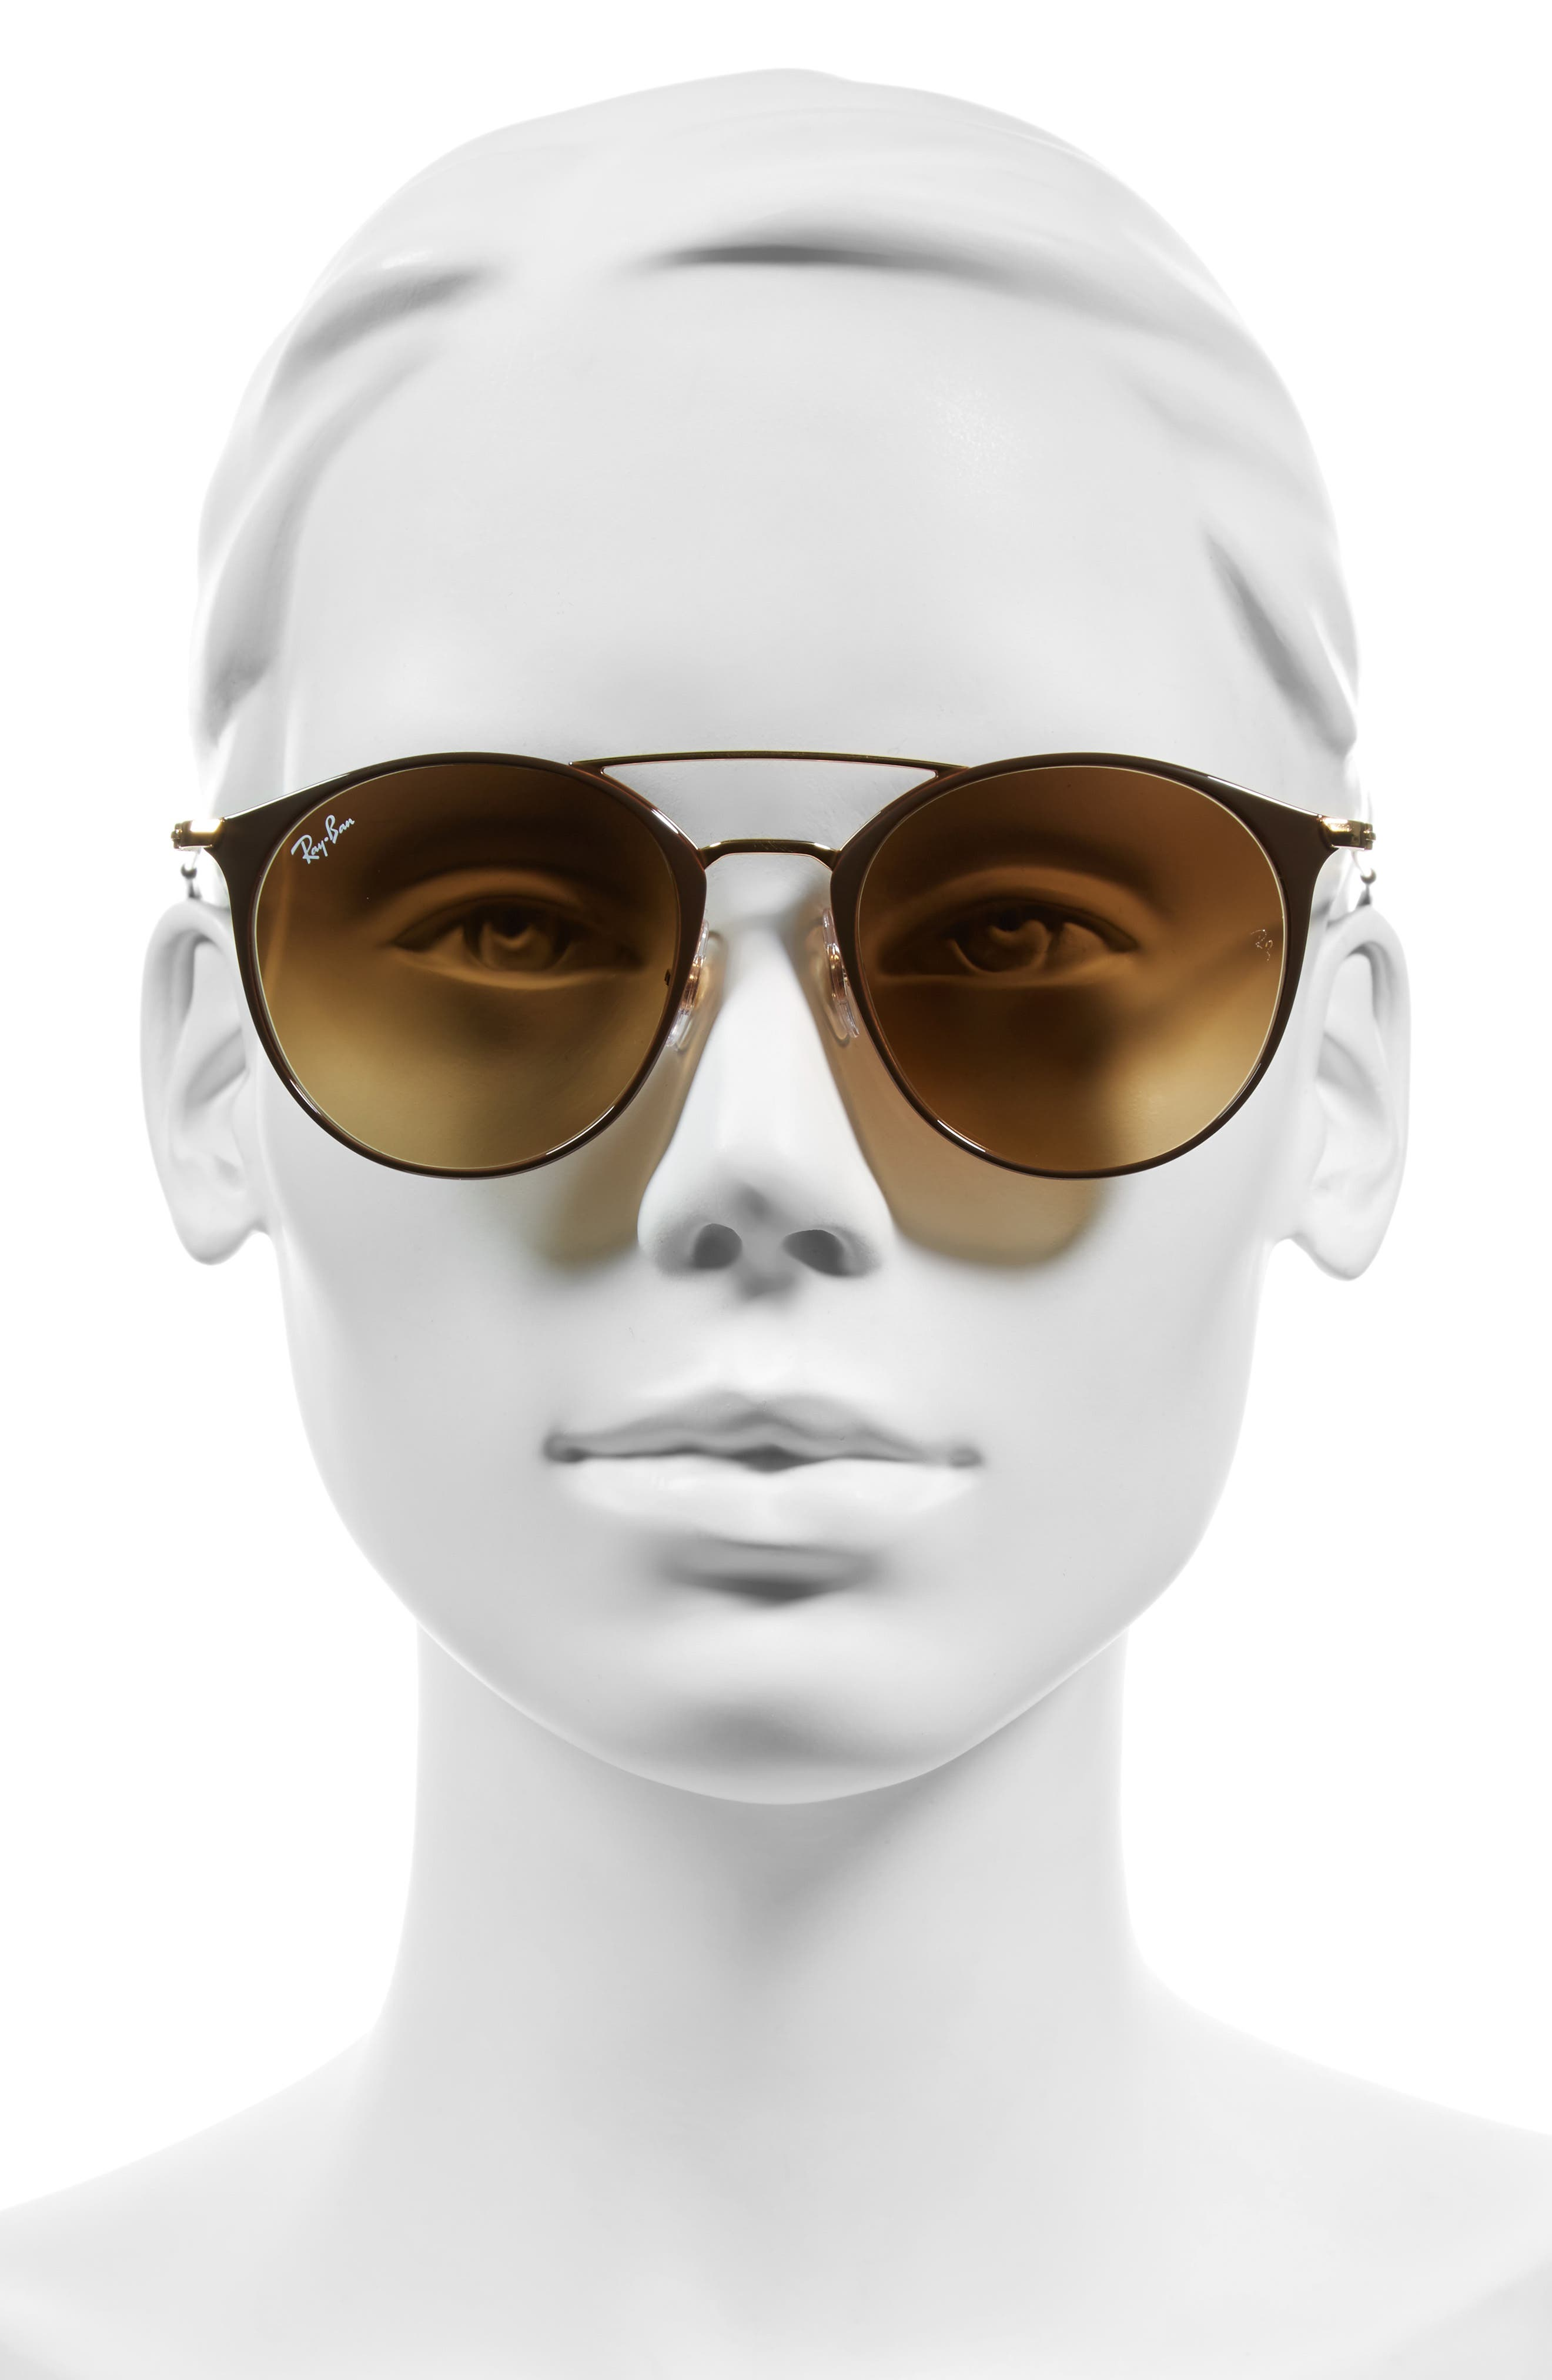 Highstreet 52mm Round Brow Bar Sunglasses,                             Alternate thumbnail 2, color,                             BROWN/ GOLD